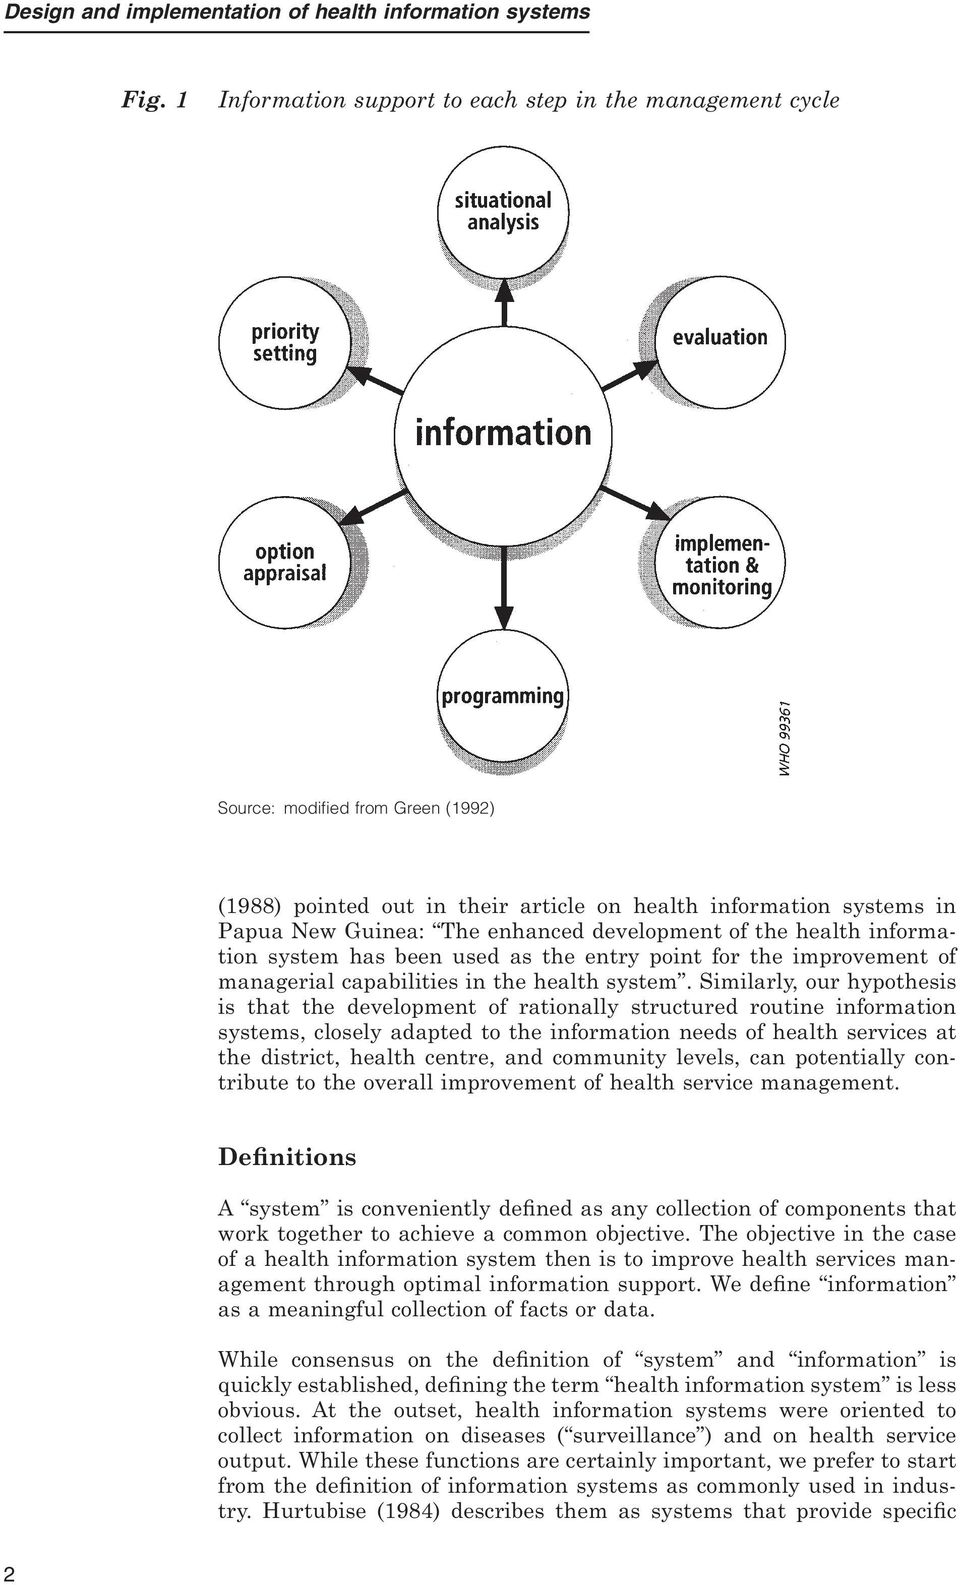 Design And Implementation Of Health Information Systems Pdf Free Download